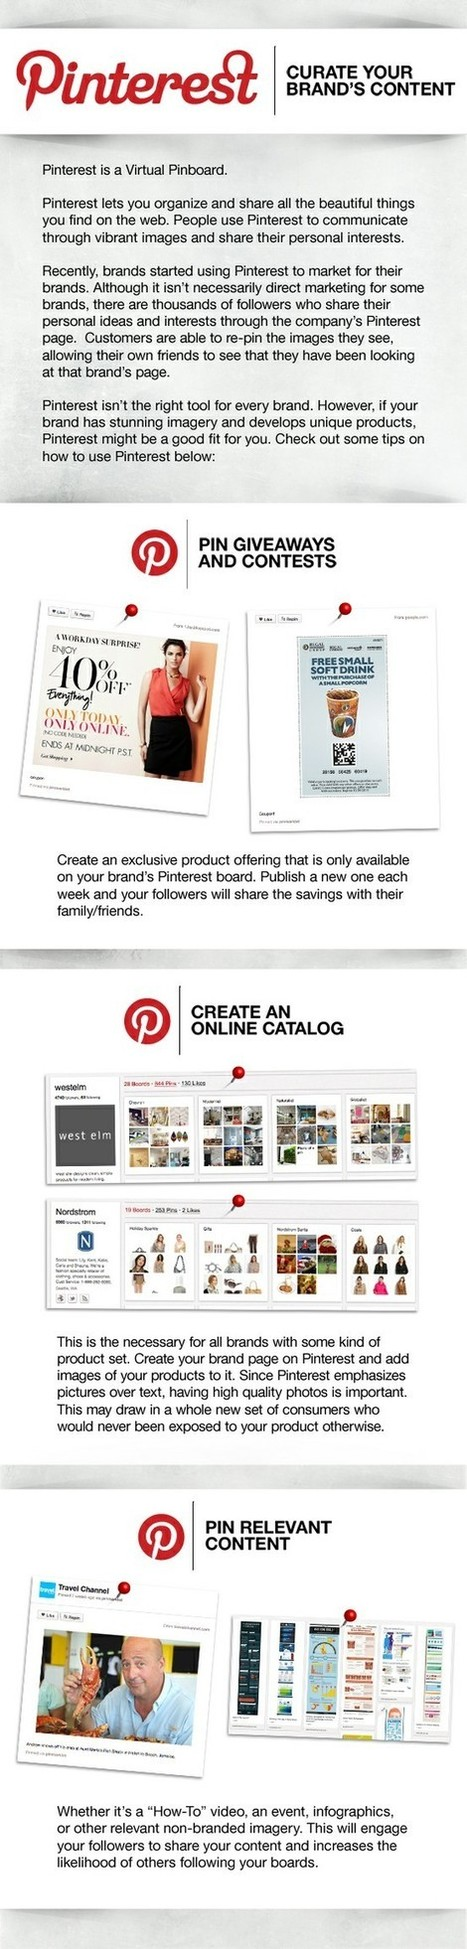 Curate your Brand's Content with Pinterest [Infographic] | Amazing Infographs | Scoop.it